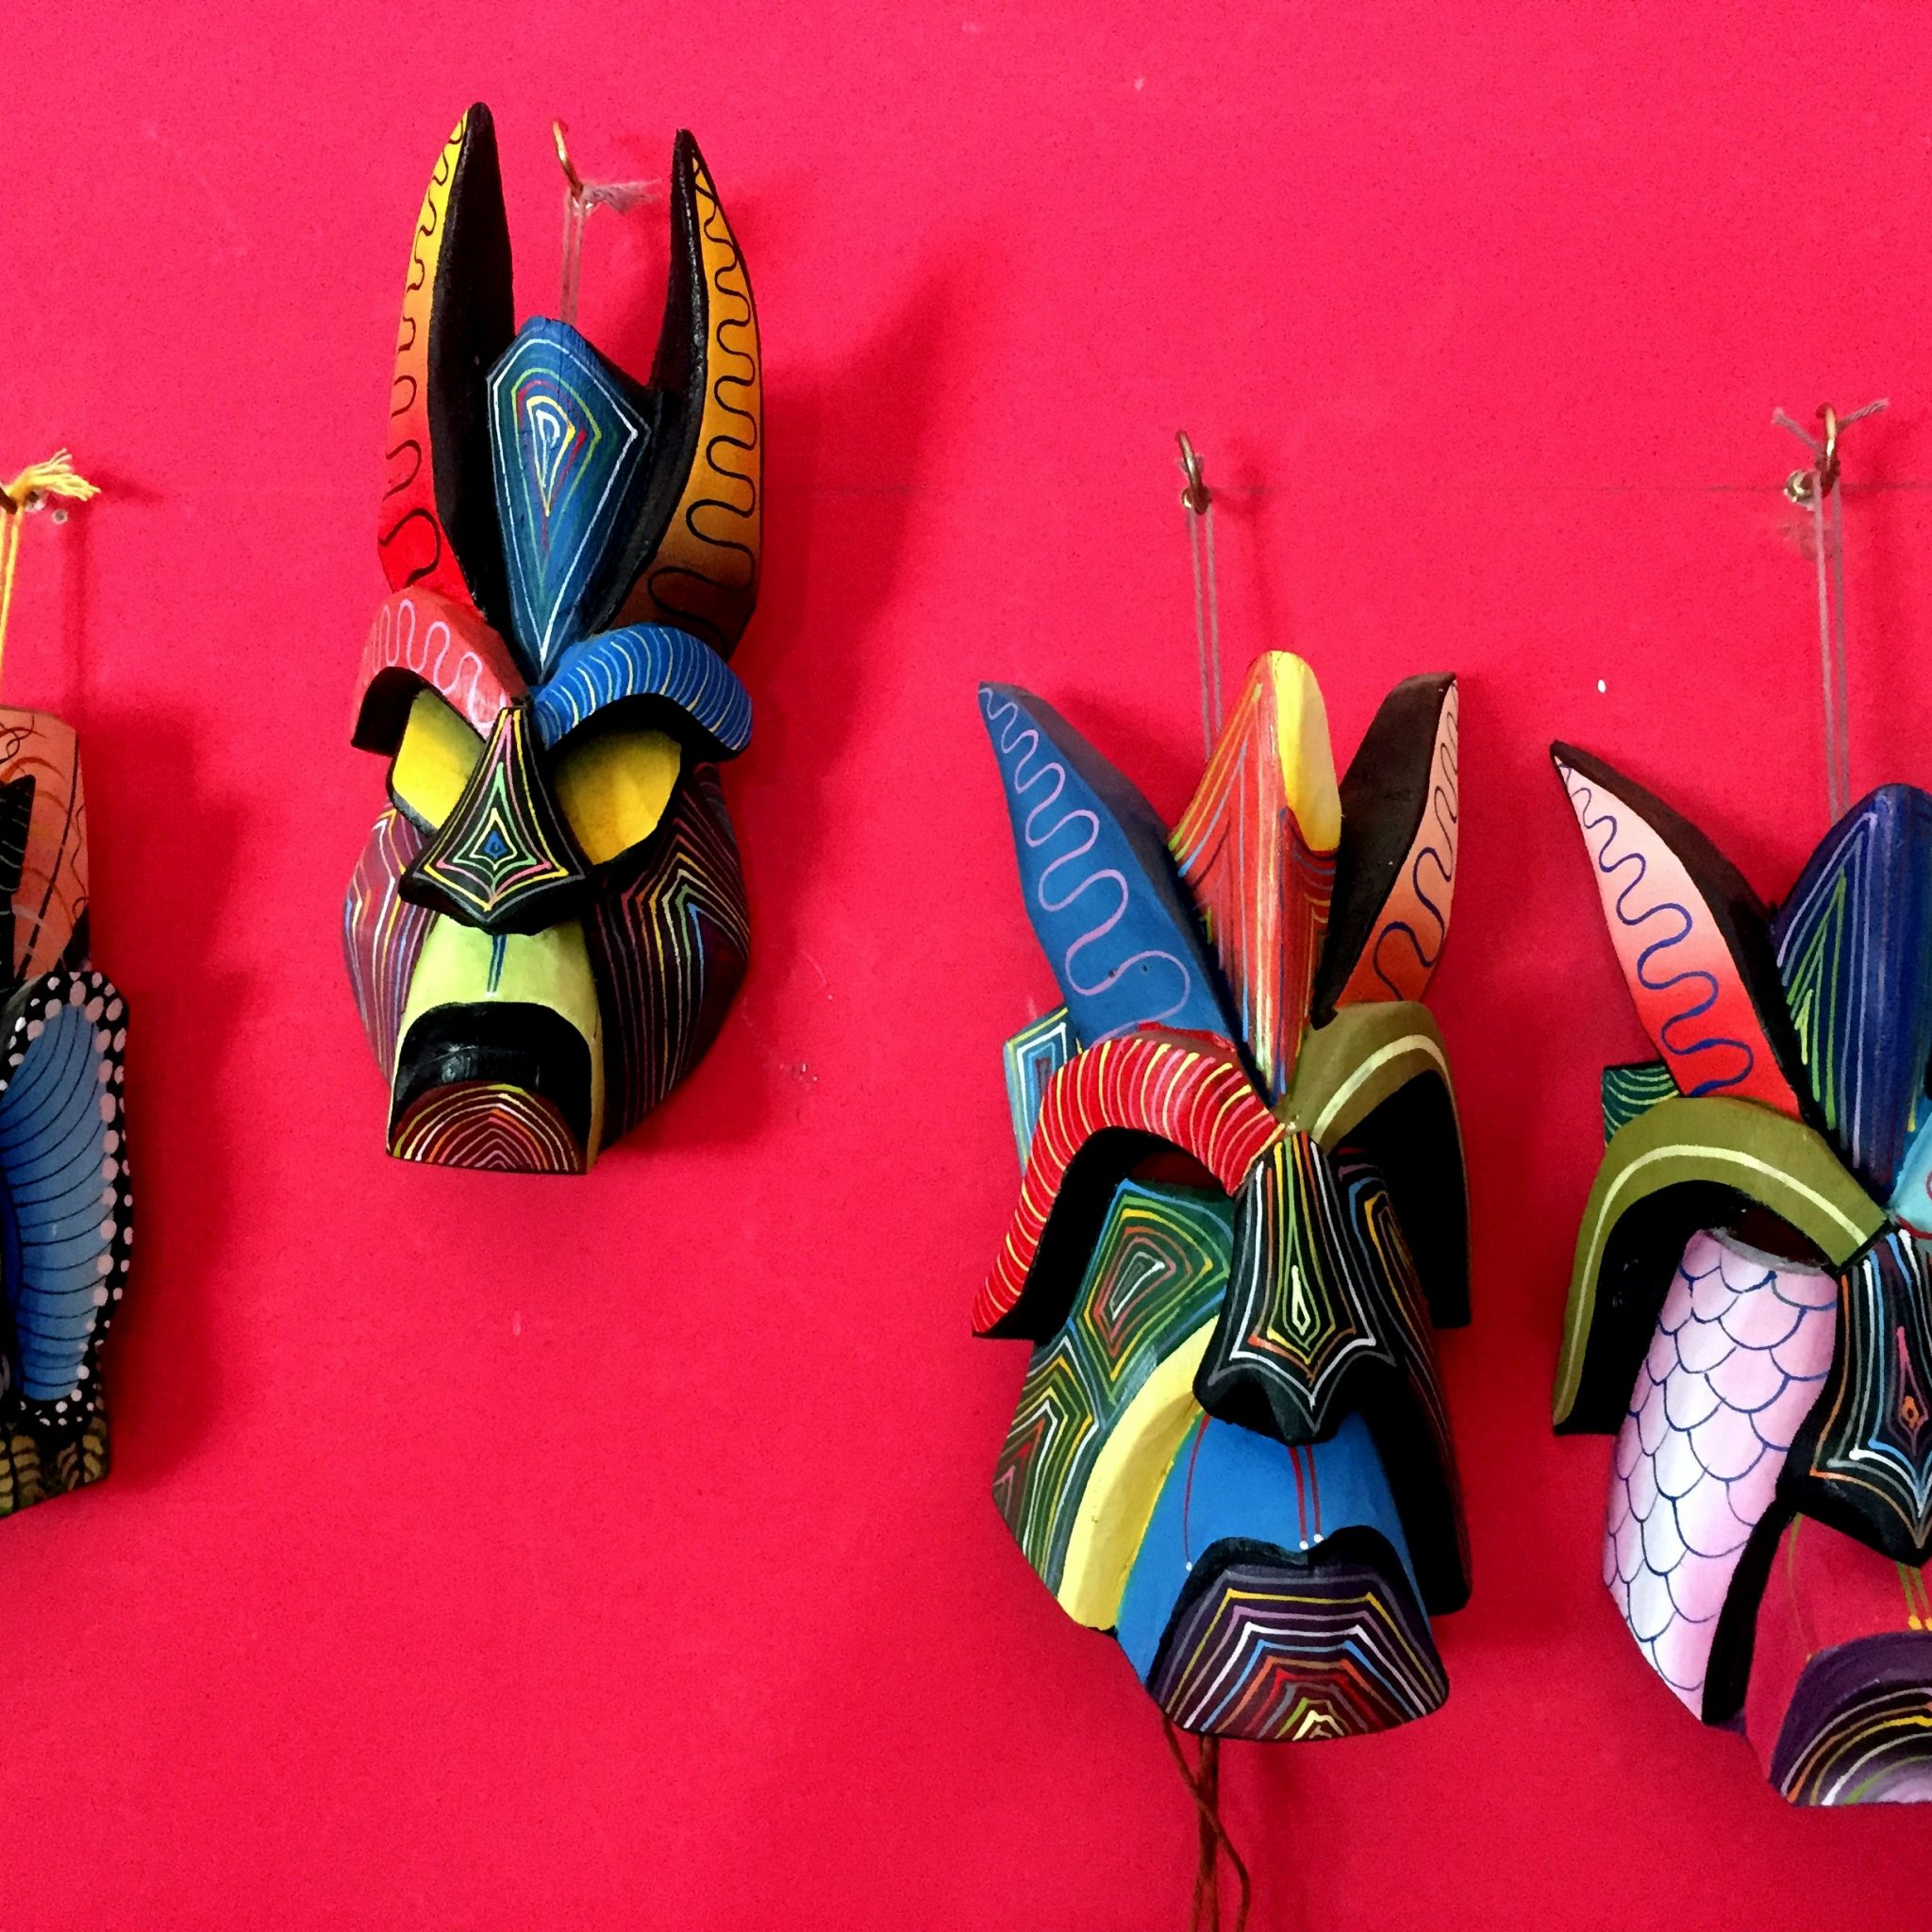 Boruca masks are a symbol of glory and stunning decorative art pieces.